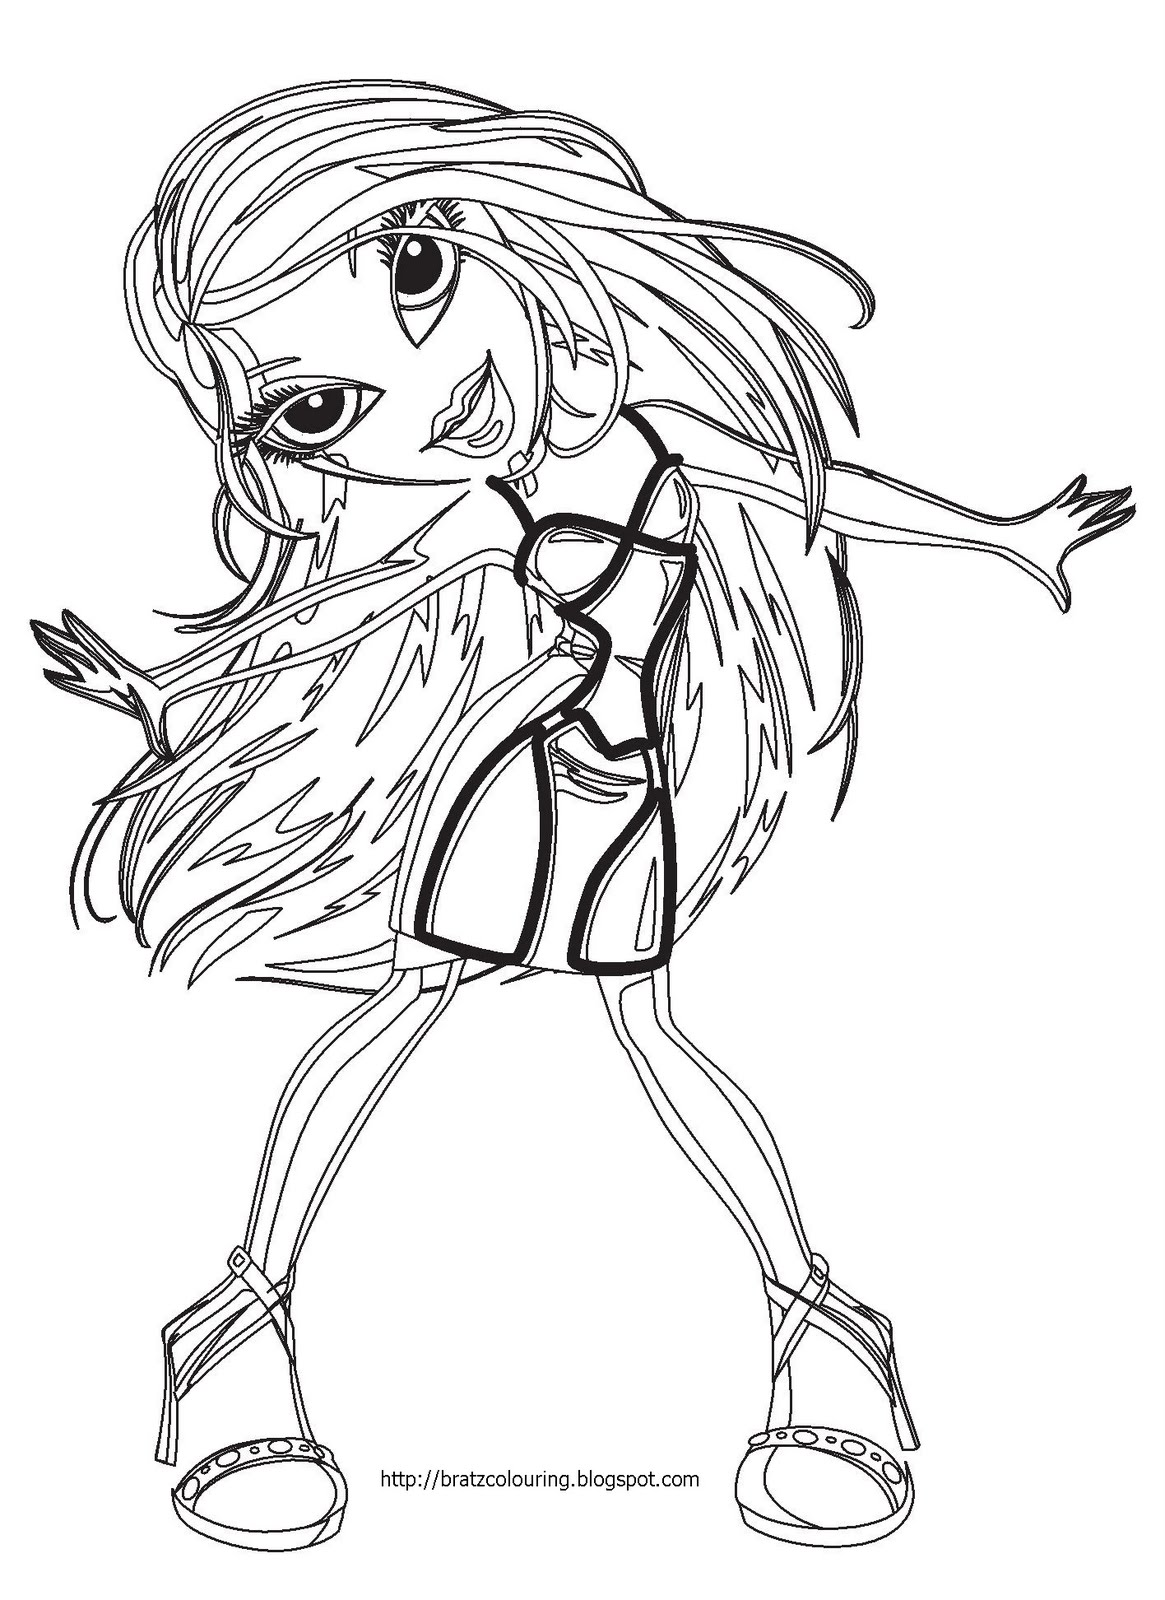 Superbe FREE PRINT AND COLOR BRATZ COLORING PAGES